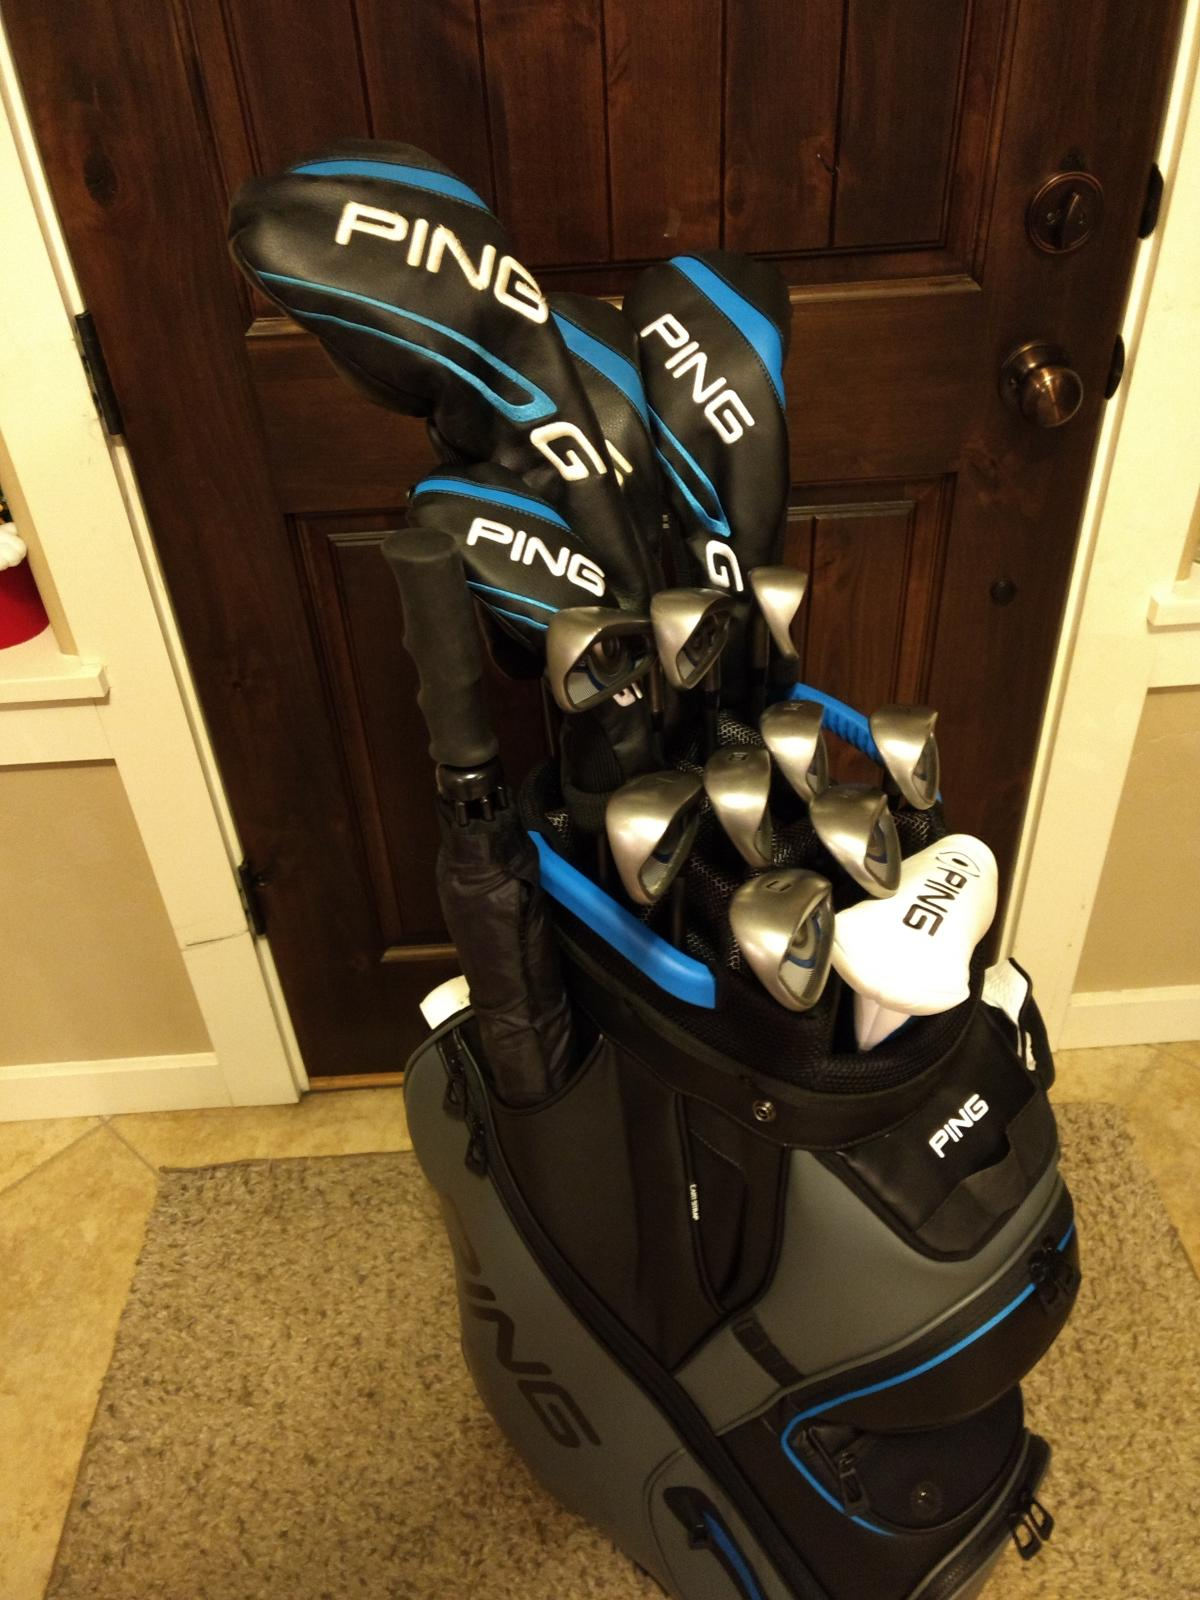 fc1054d22779 Found the bag on clearance  golfdiscount.com. It is the PING DLX with the  hard-to-find black